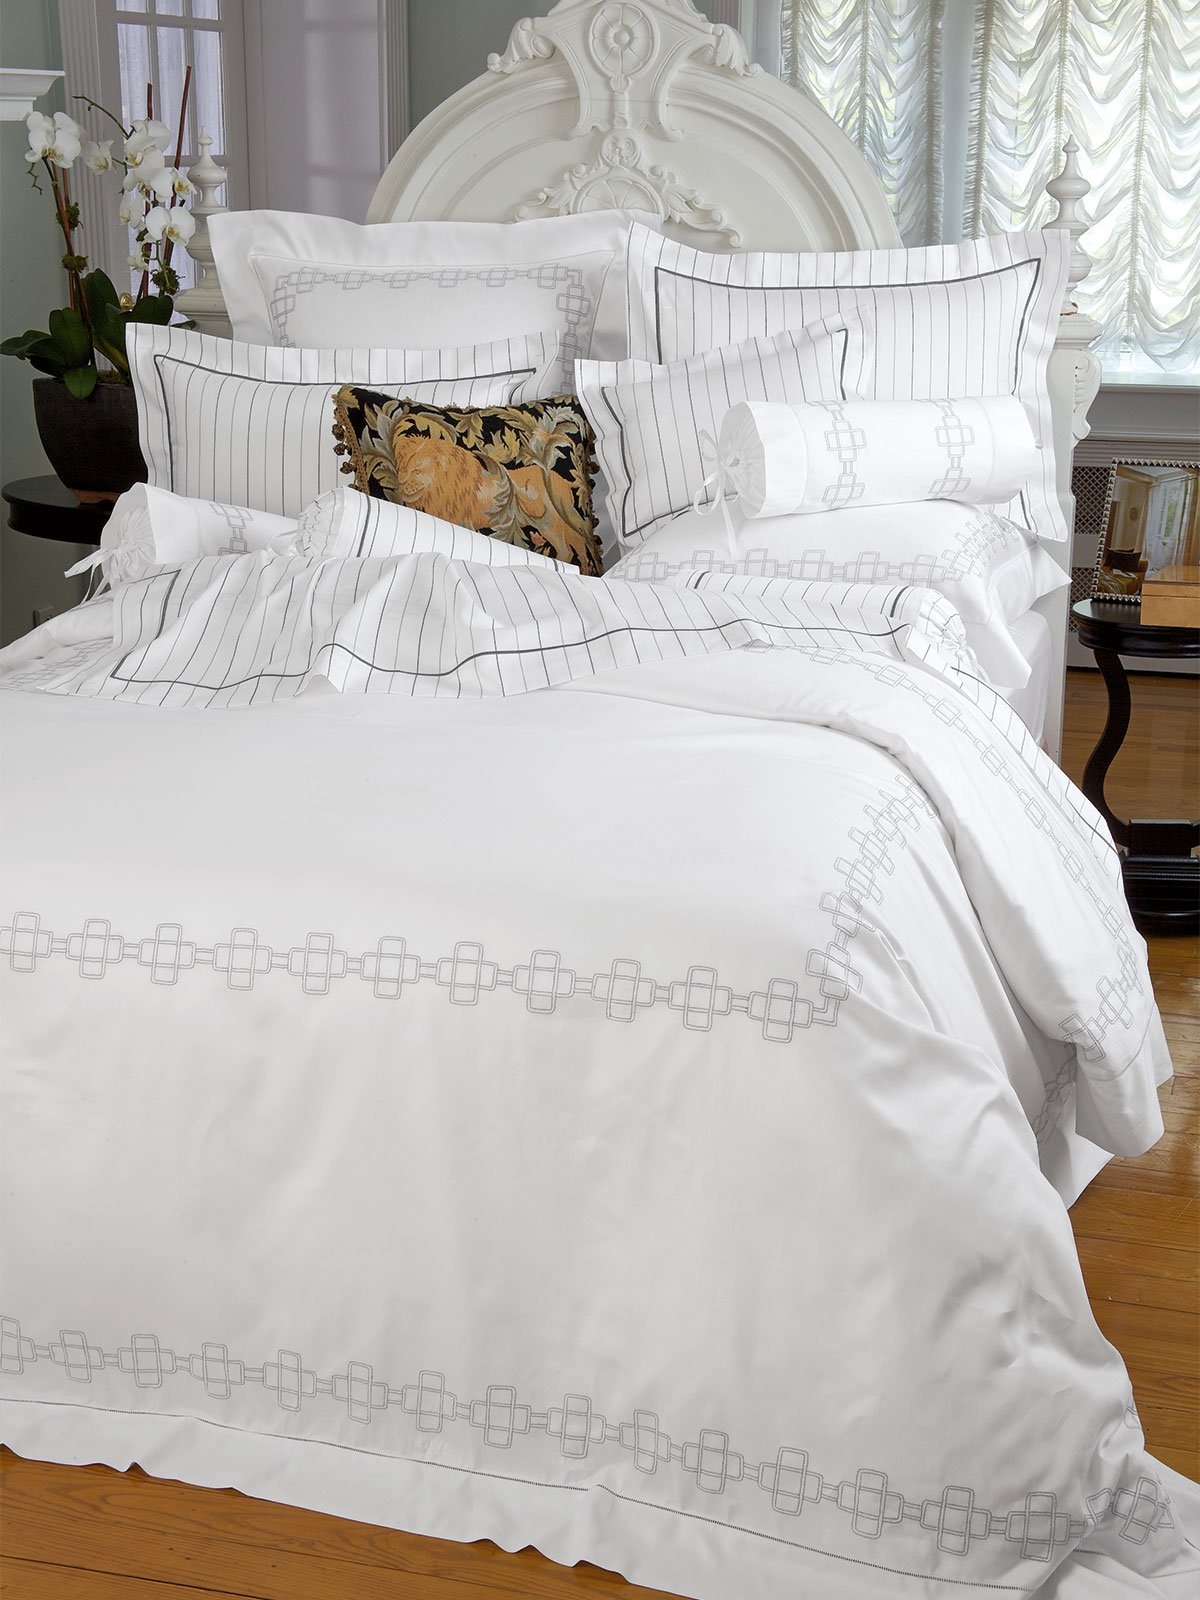 Fifth Ave Bedding